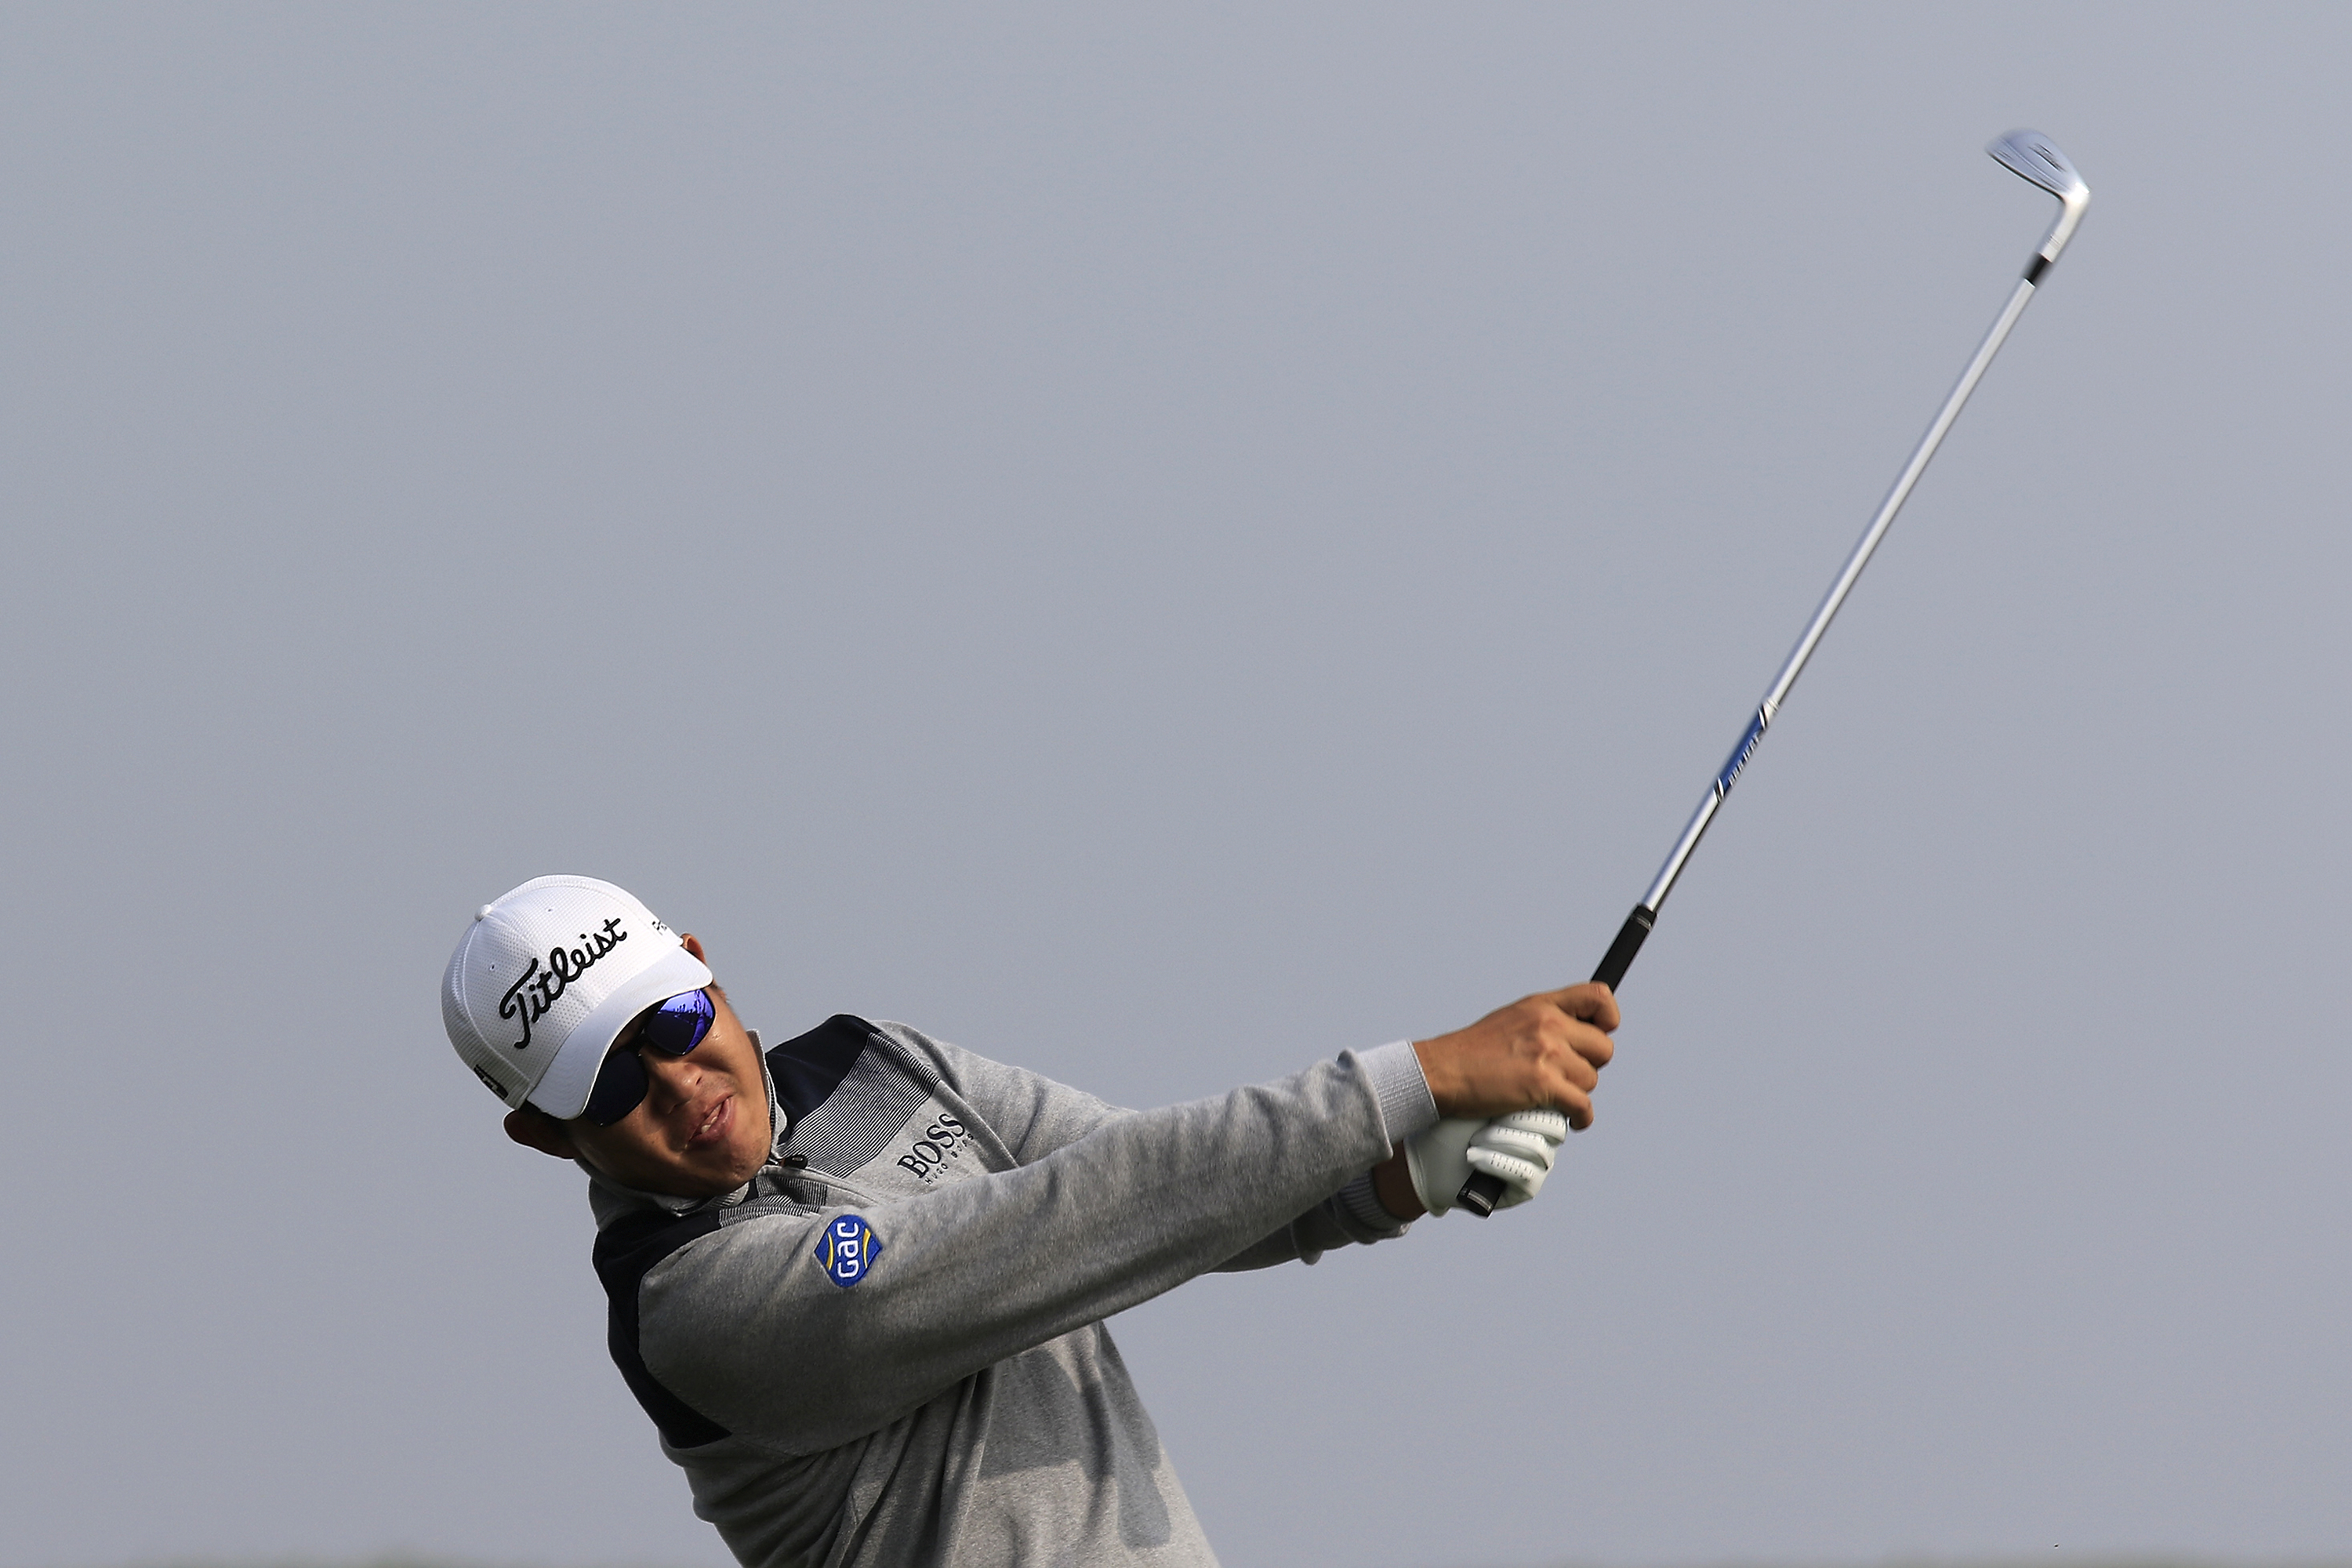 Byeong-Hun An of South Korea tees off on the 6th hole during the third round of the BMW Masters golf tournament at the Lake Malaren Golf Club in Shanghai, China, Saturday, Nov. 14, 2015. (AP Photo)